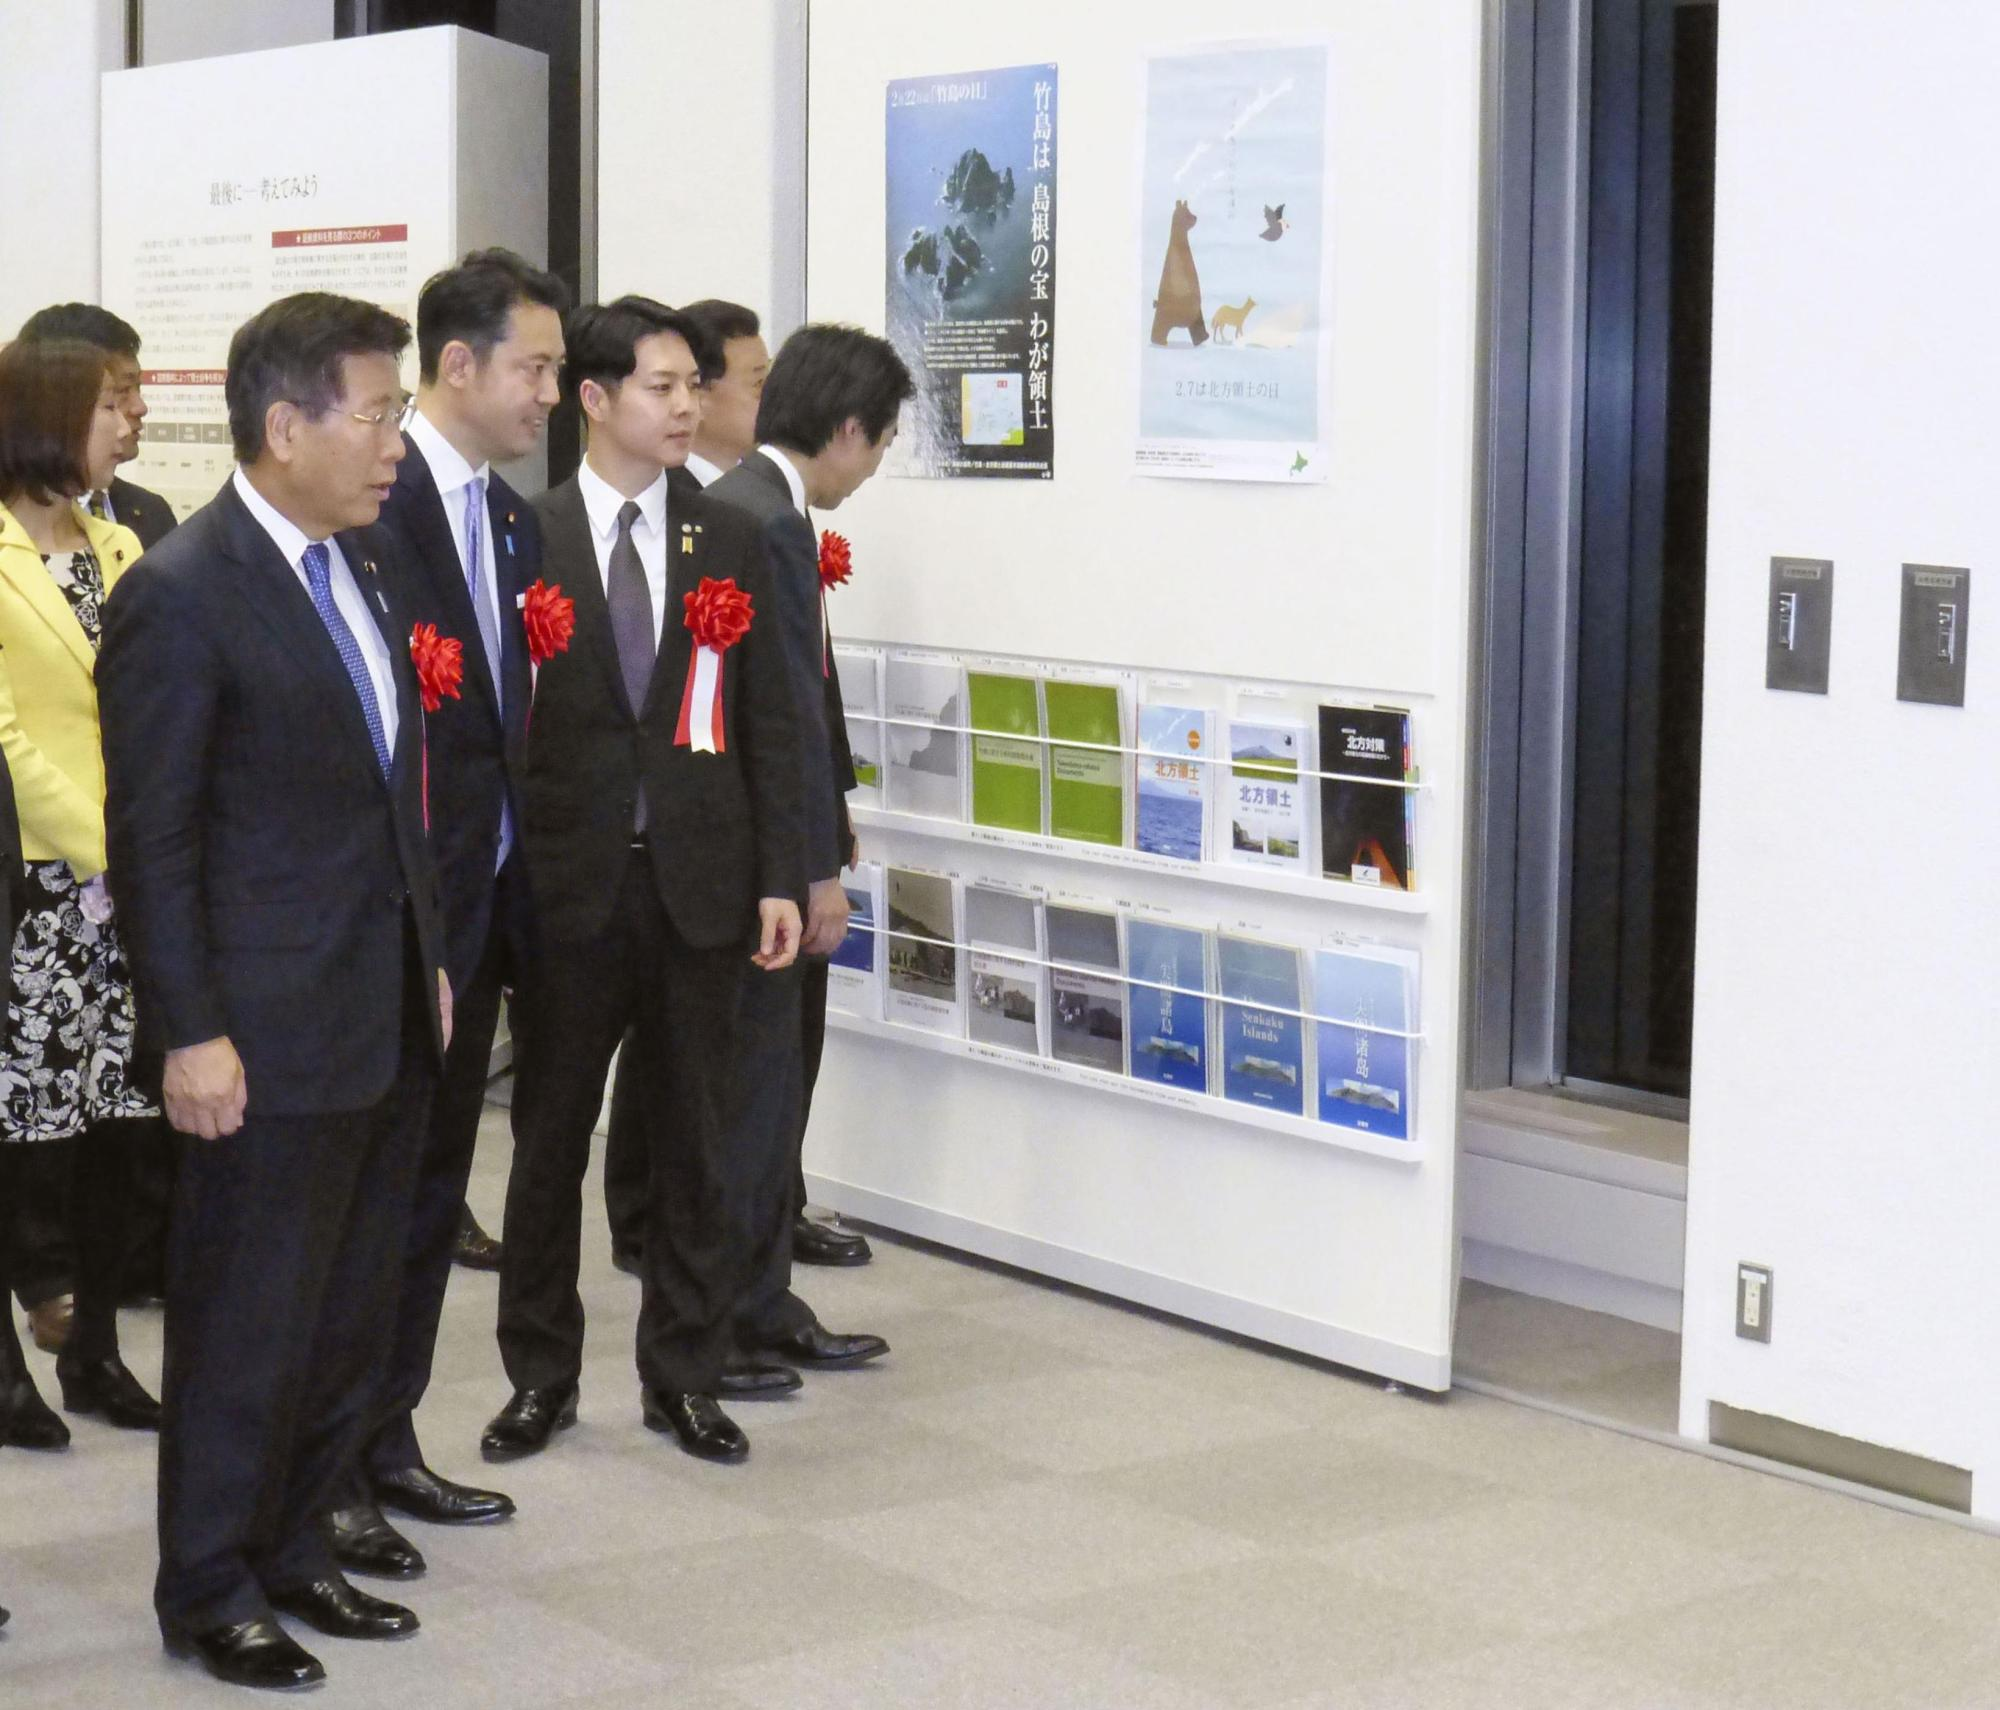 Seiichi Eto (left), minister in charge of territorial issues, visits the National Museum of Territory and Sovereignty in Chiyoda Ward, Tokyo, on Monday. | KYODO